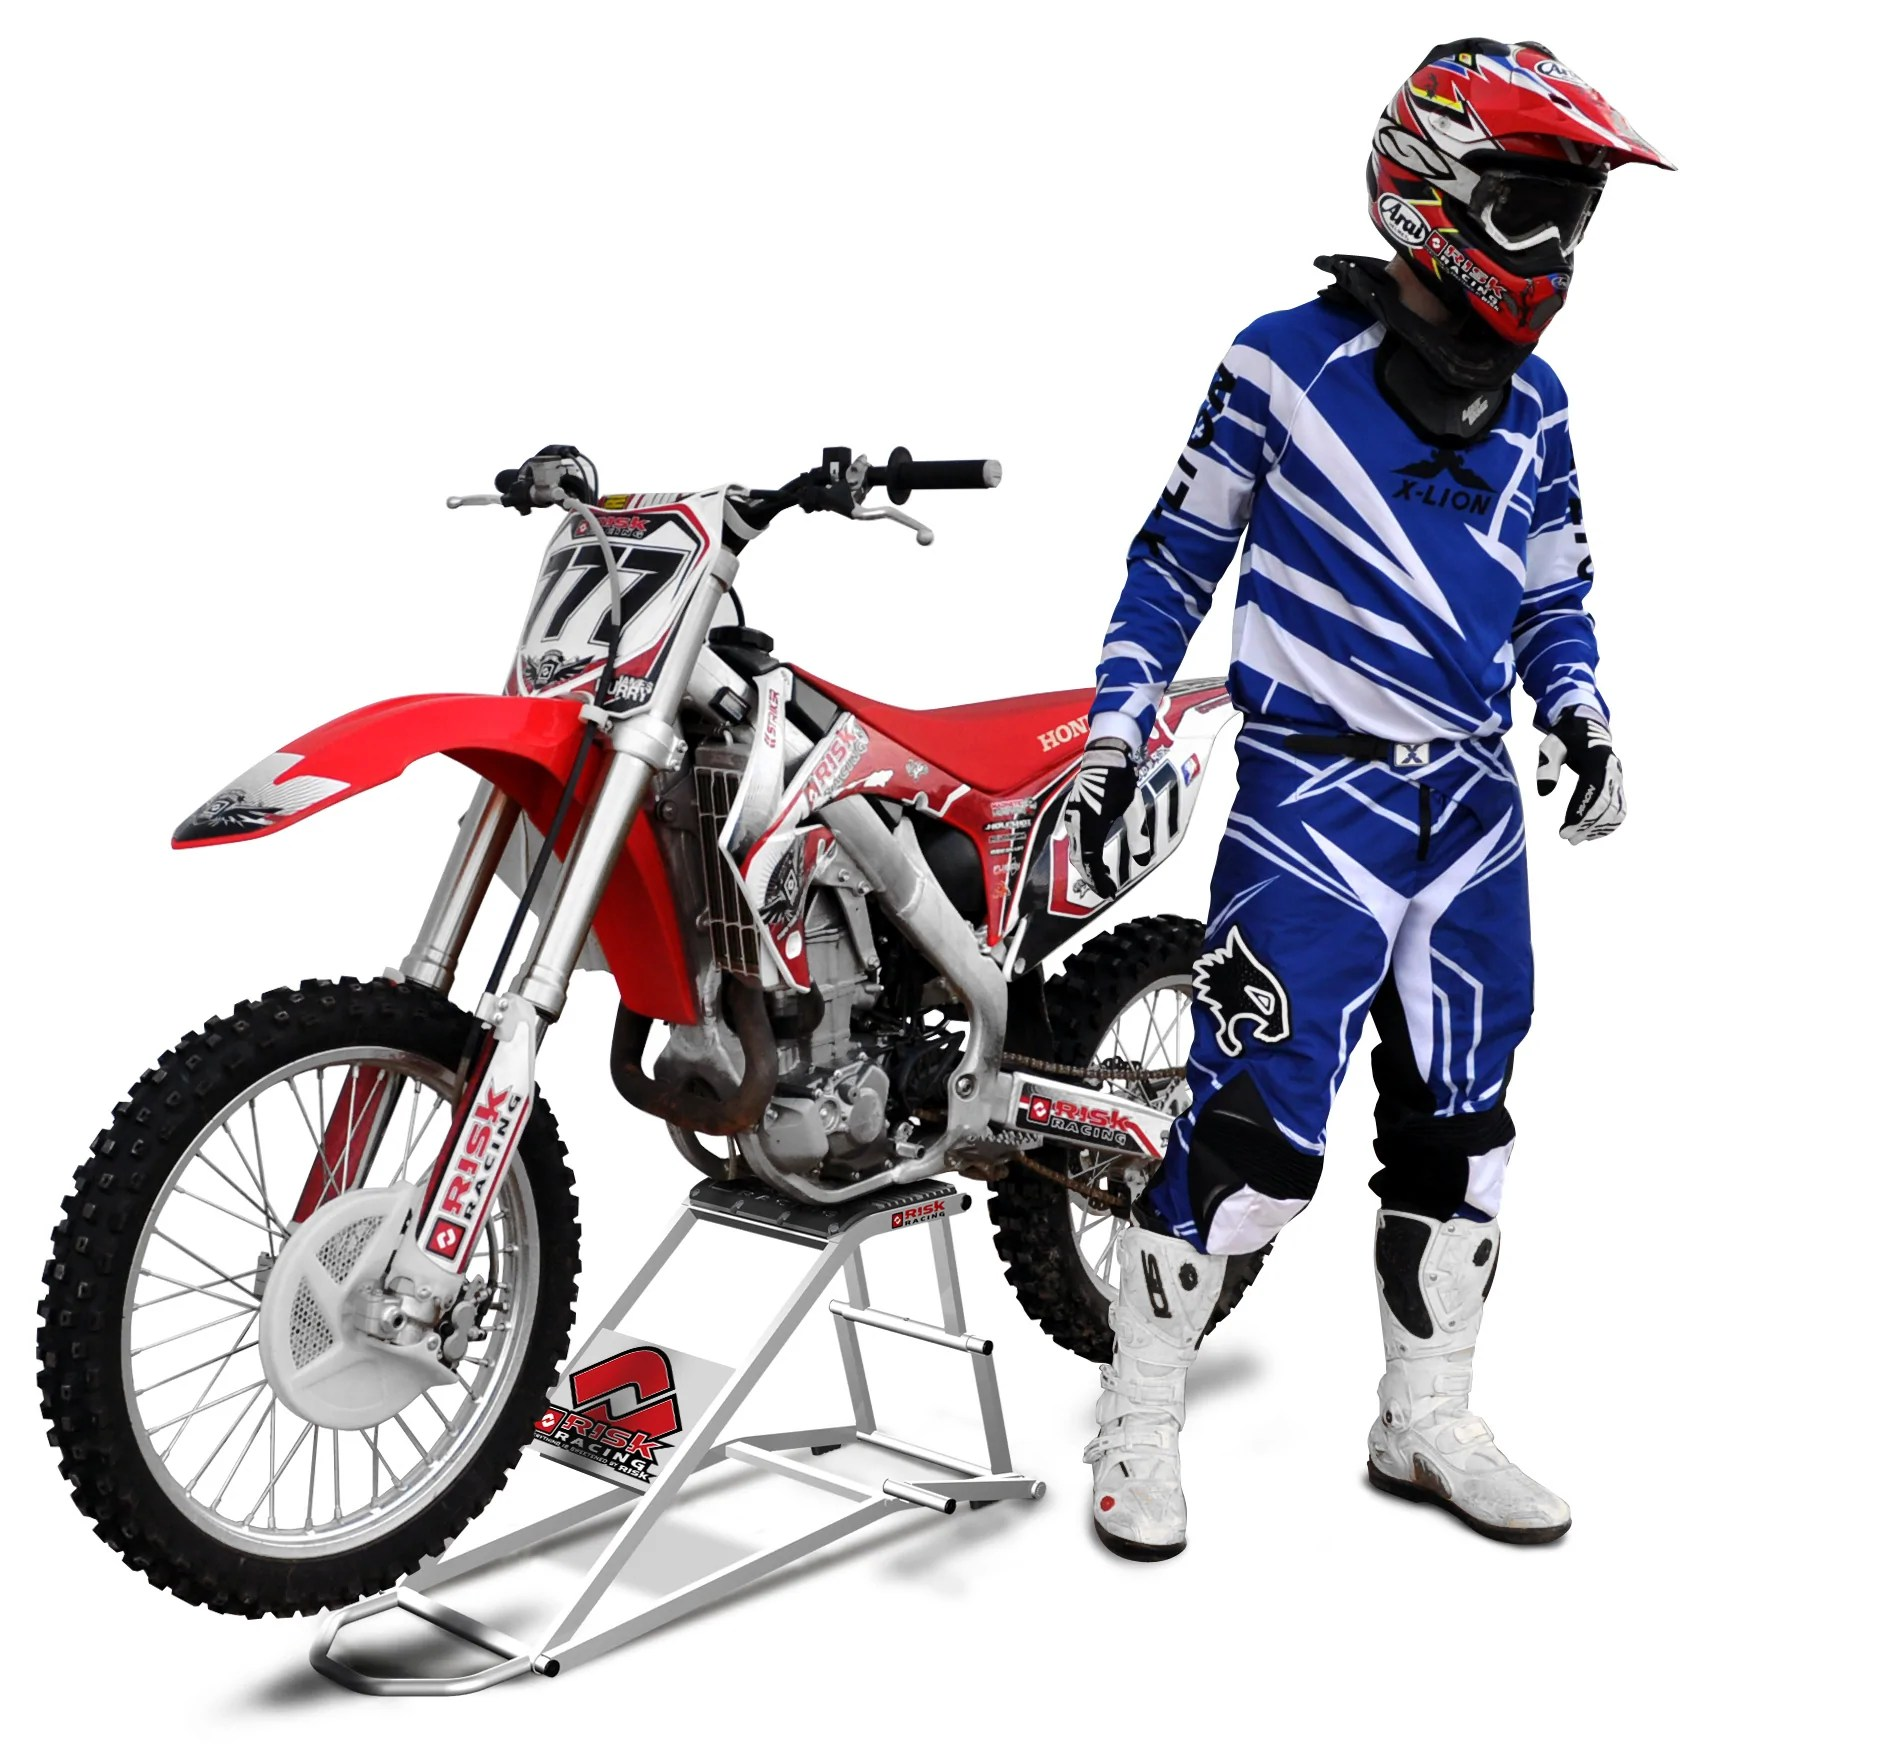 Motocross Garage Accessories Rr1 Ride On Lift Ride Off The Track Onto Your Stand Risk Racing